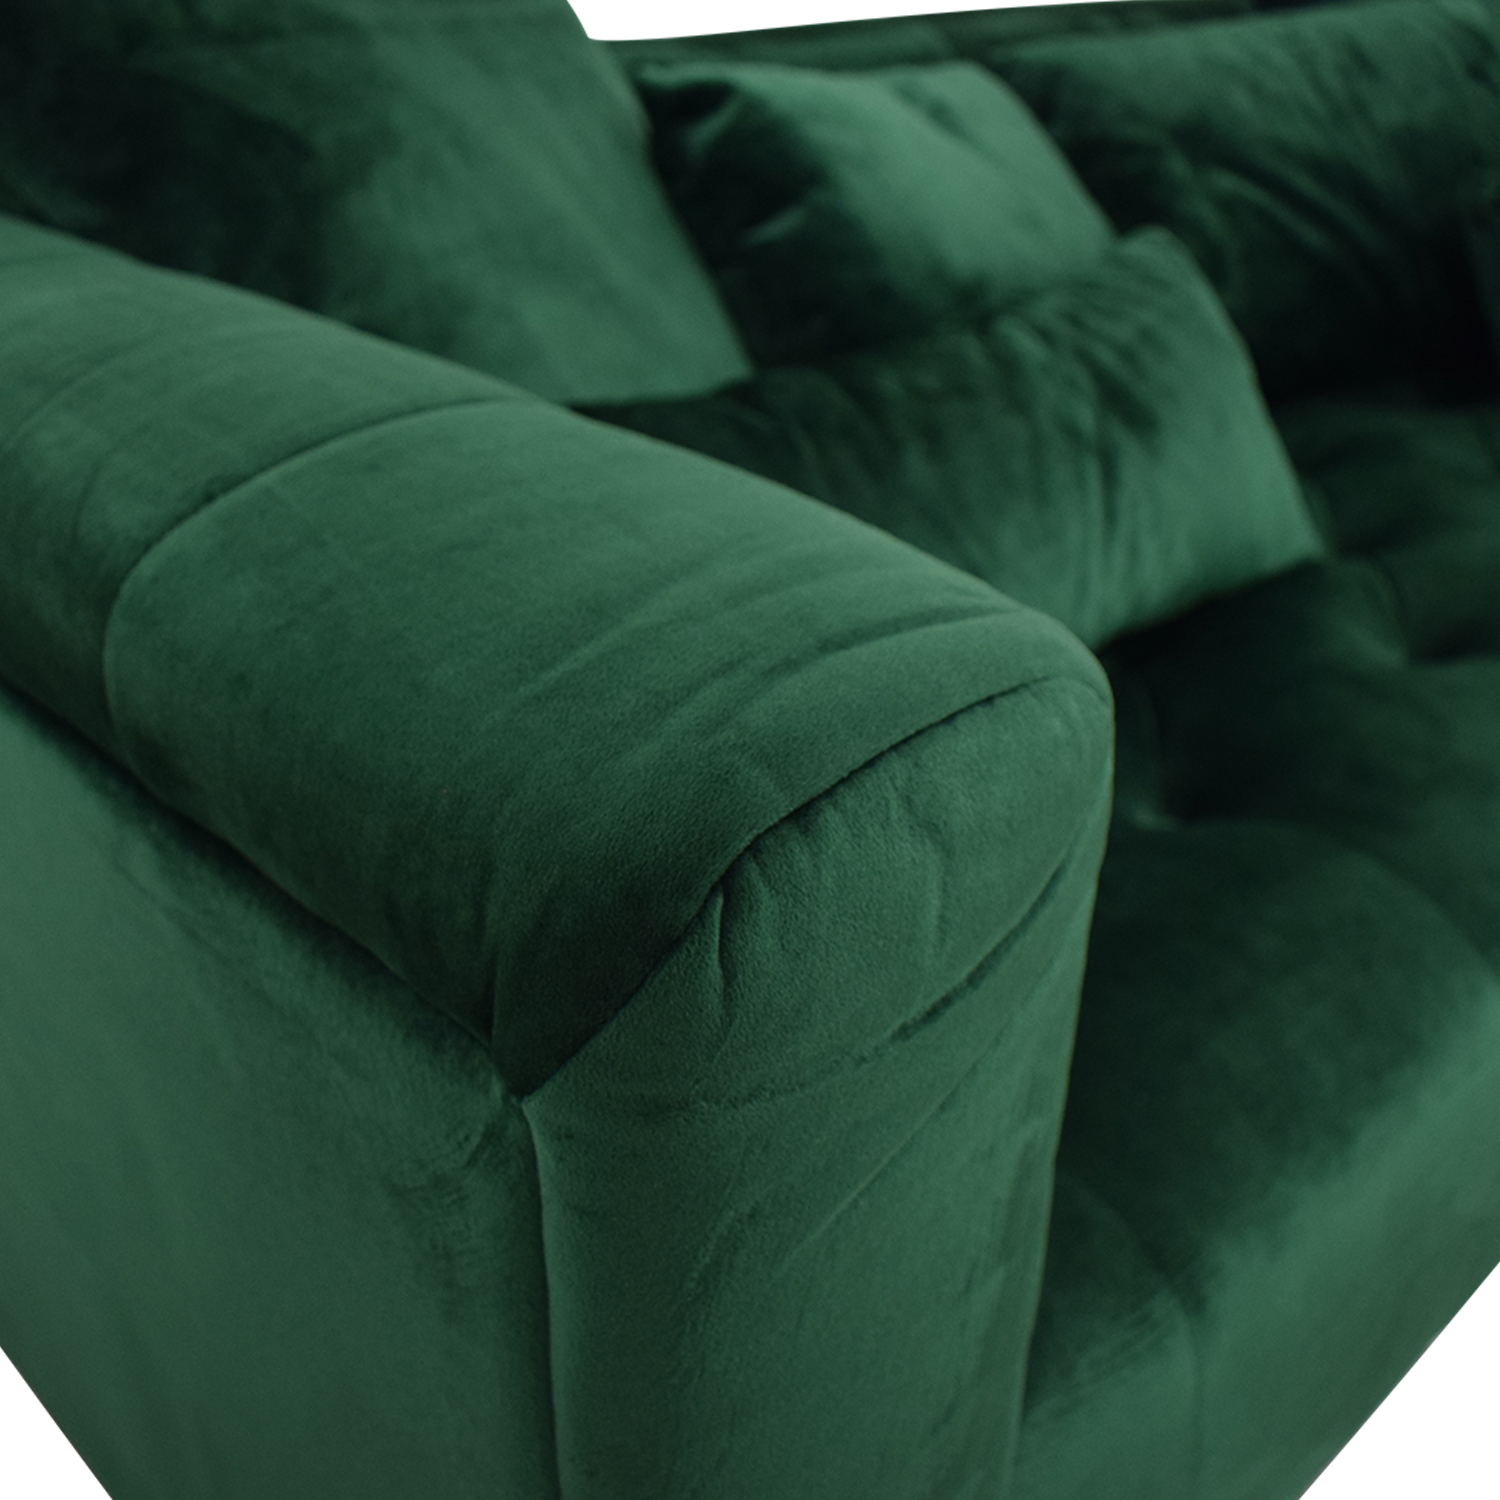 Interior Define Ms. Chesterfield Green Tufted Sofa for sale